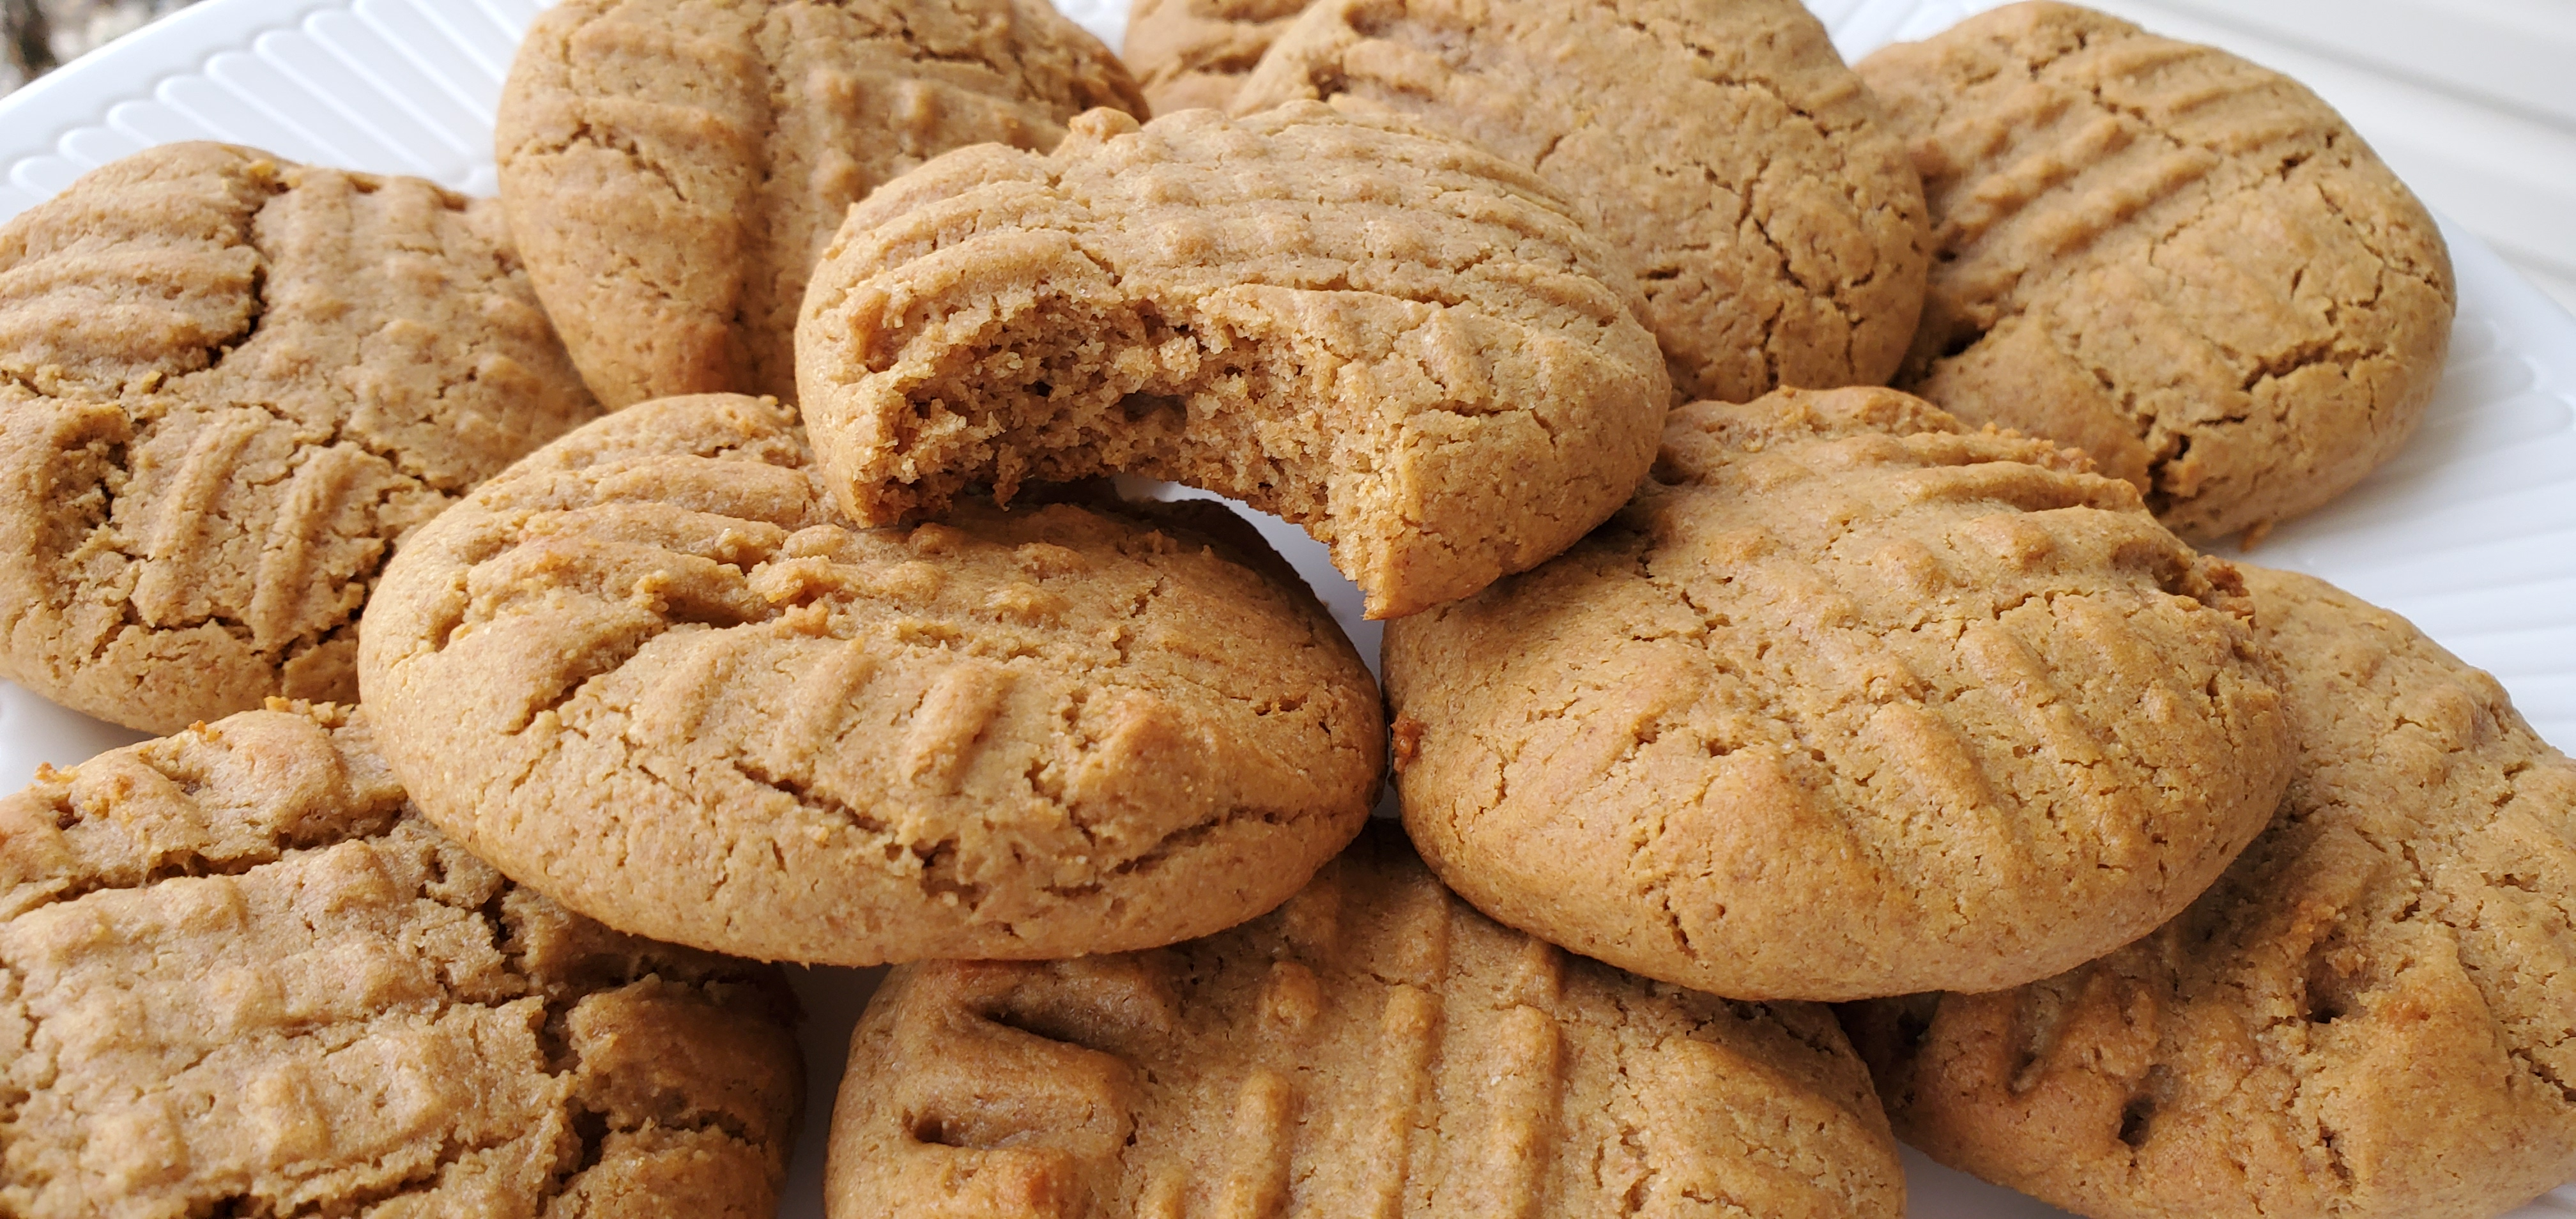 Honey Whole Wheat Peanut Butter Cookies